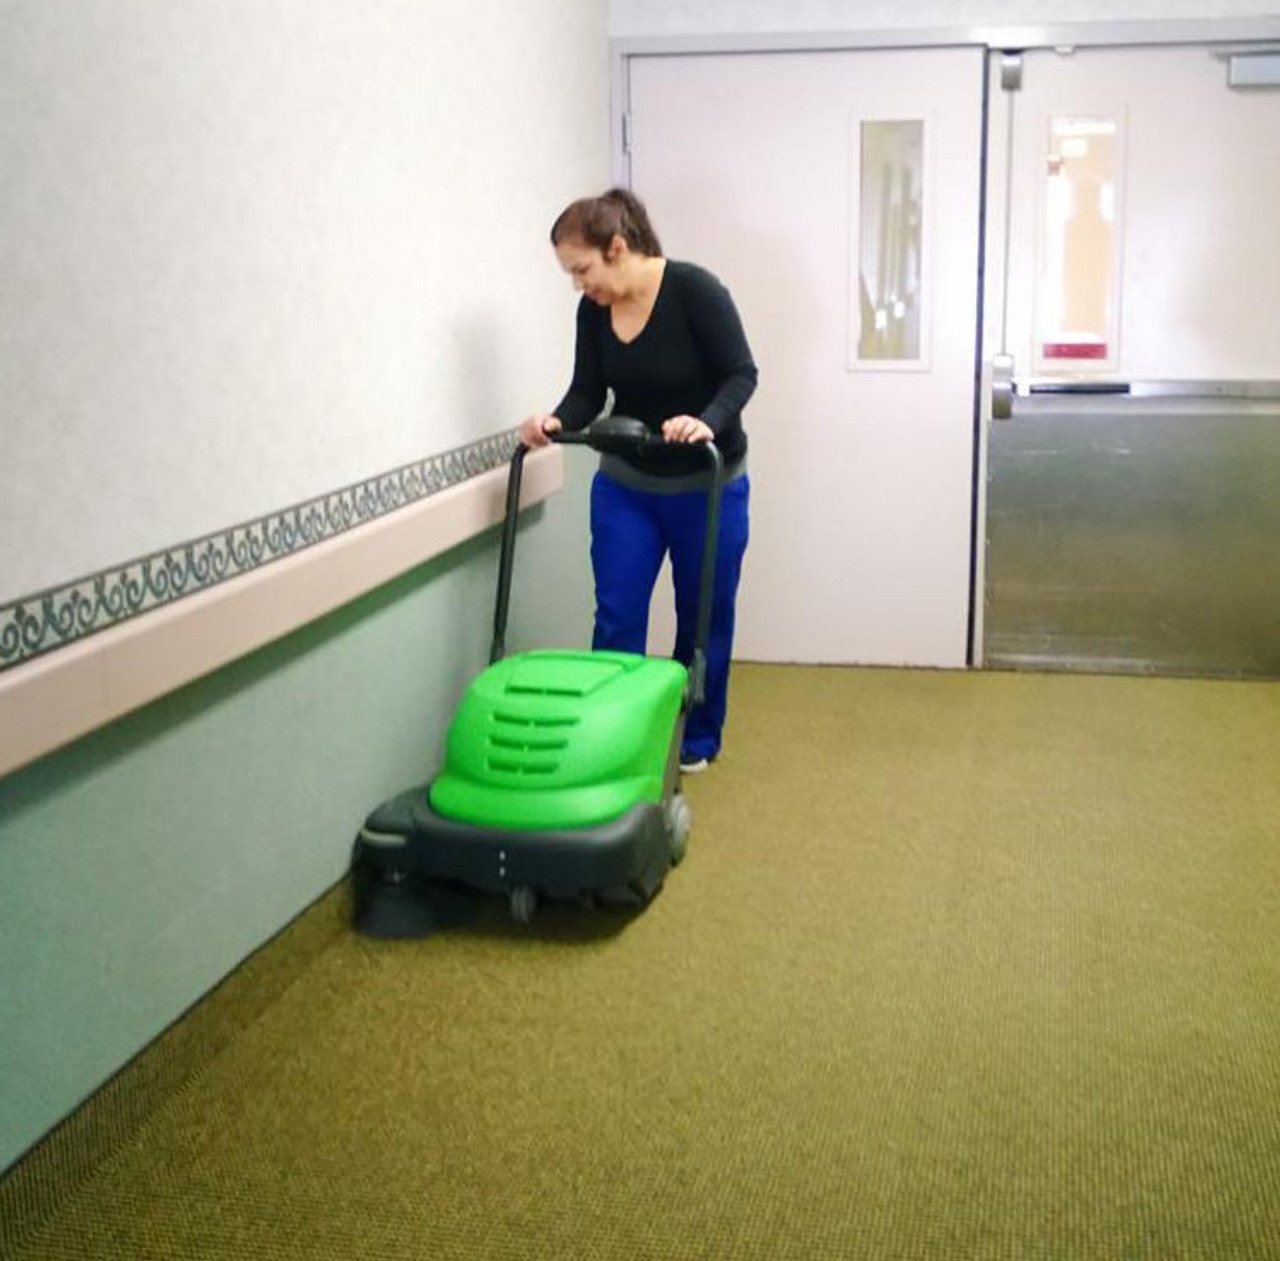 The IPC Eagle 464 Sweeper is so quiet it is perfect for hospital use.